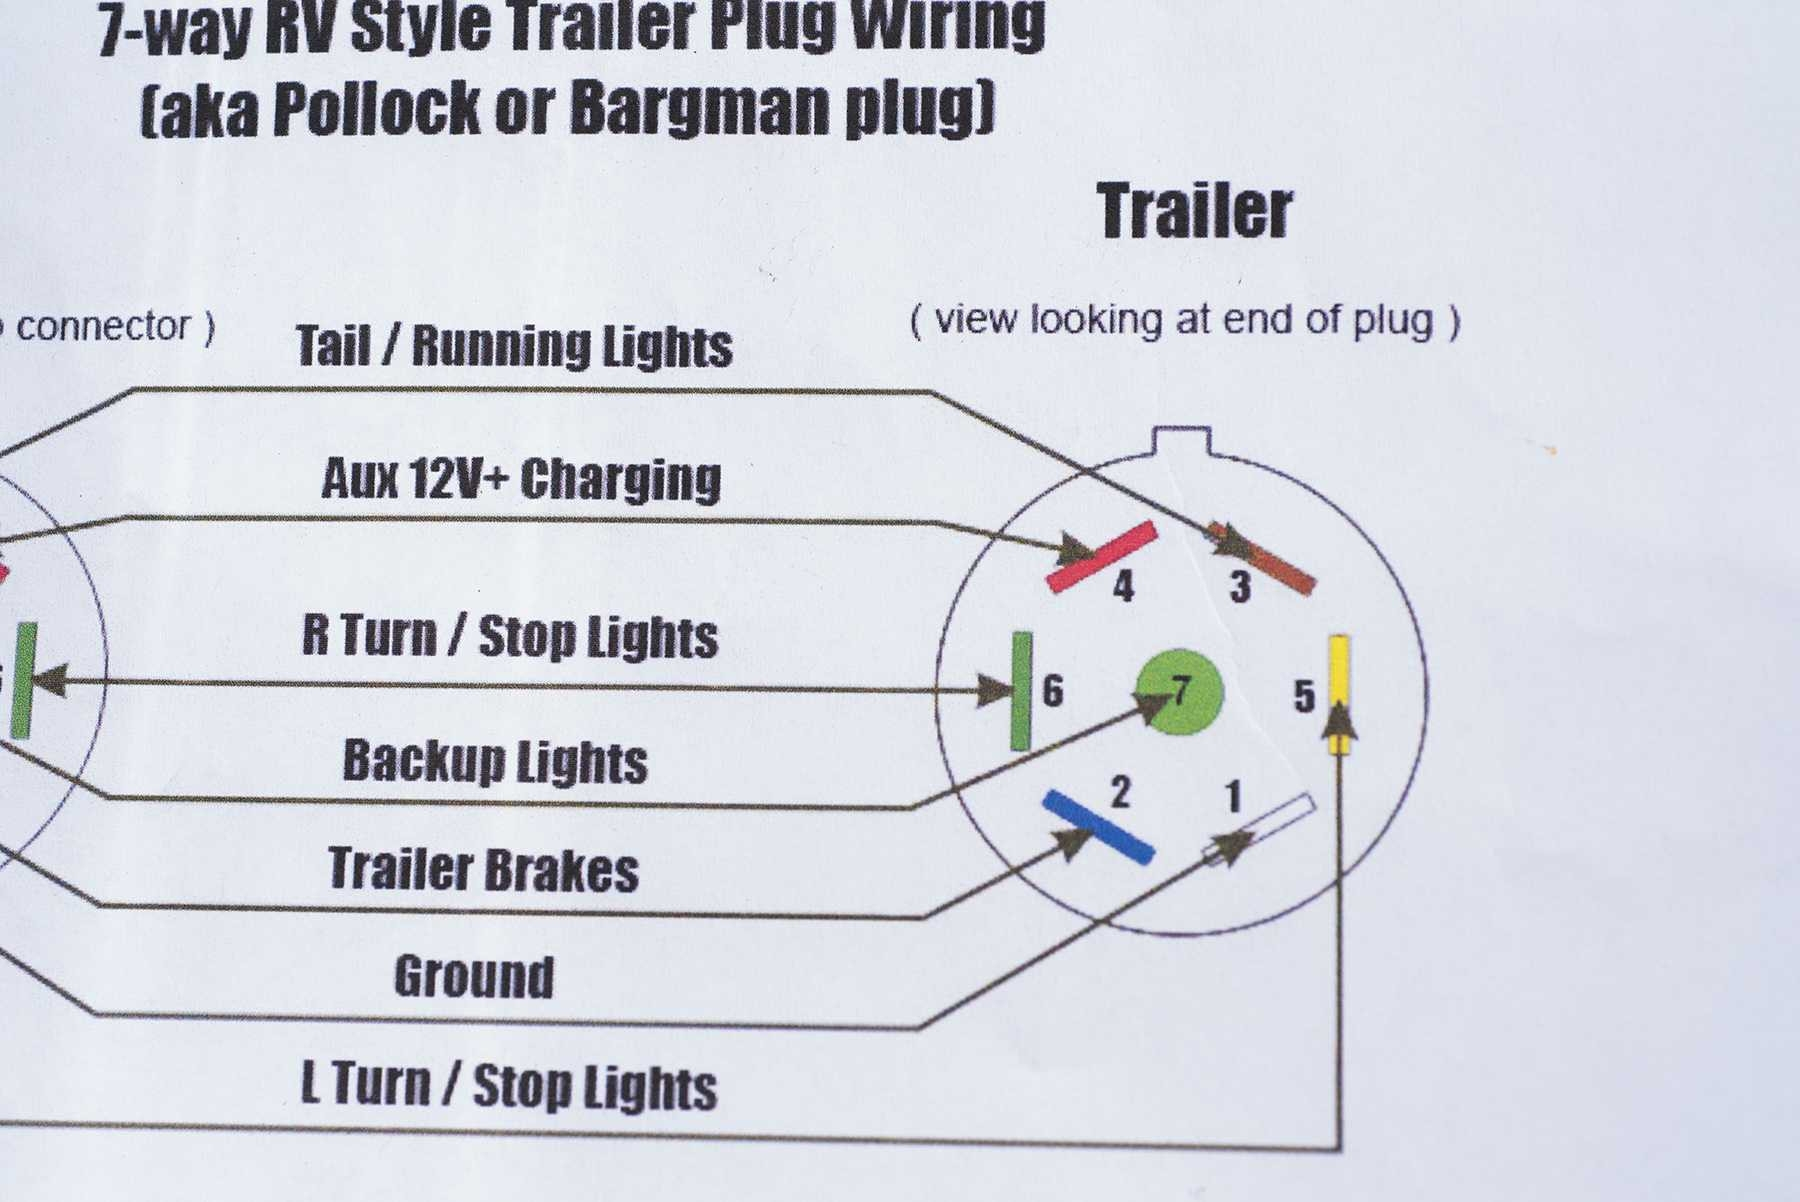 6 pin trailer plug diagram 6 pin trailer plug wiring diagram free download phillips 7 way trailer plug wiring diagram | free wiring ...